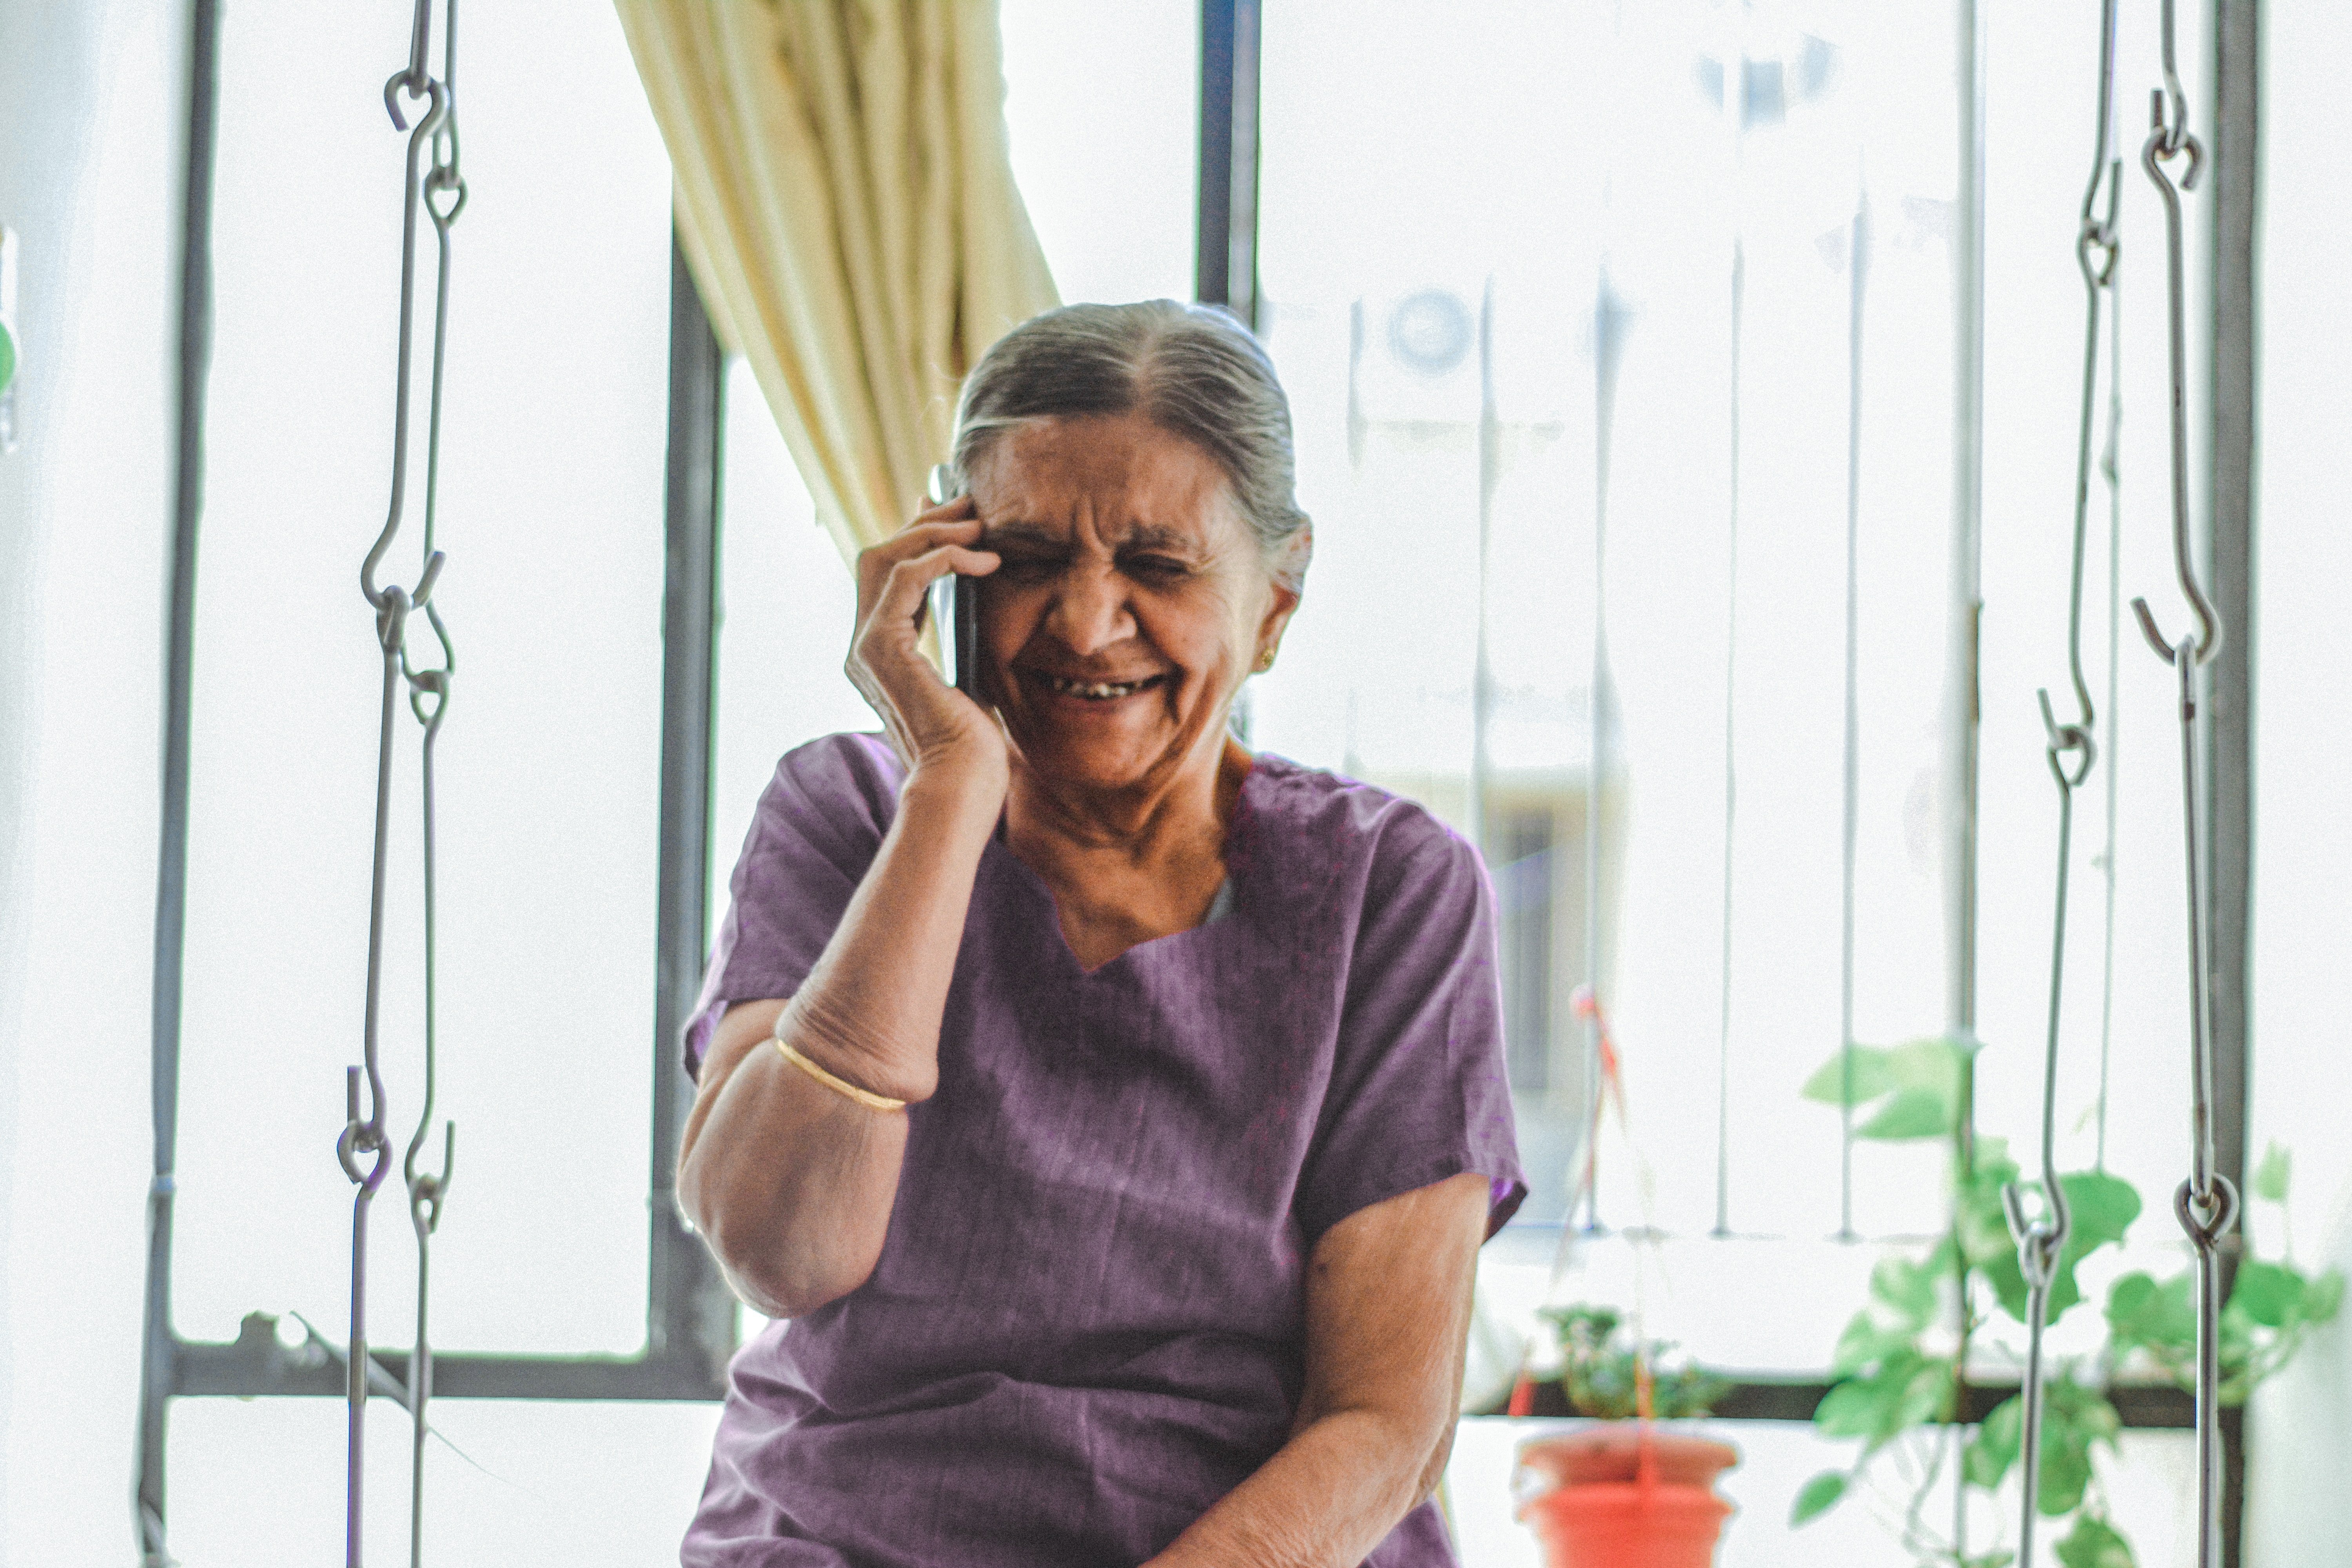 An old woman making a phone call. | Source: Unsplash